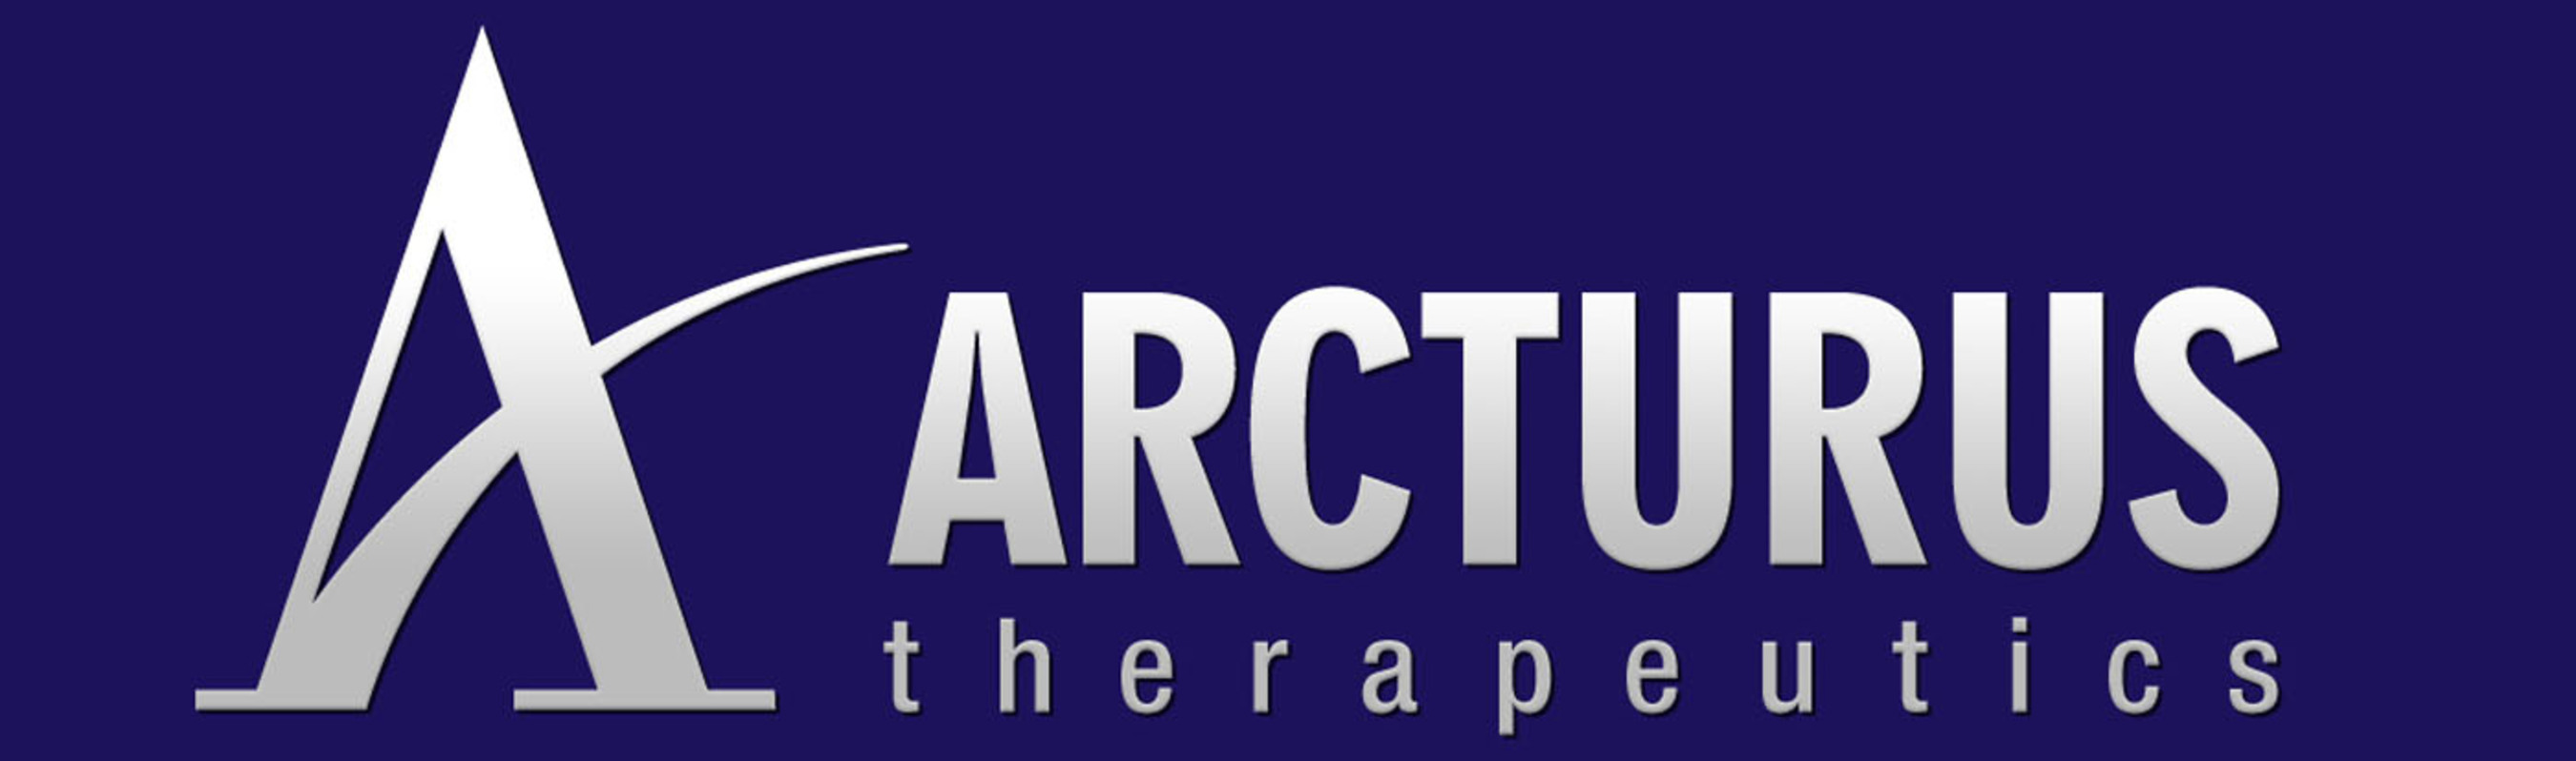 Arcturus Therapeutics